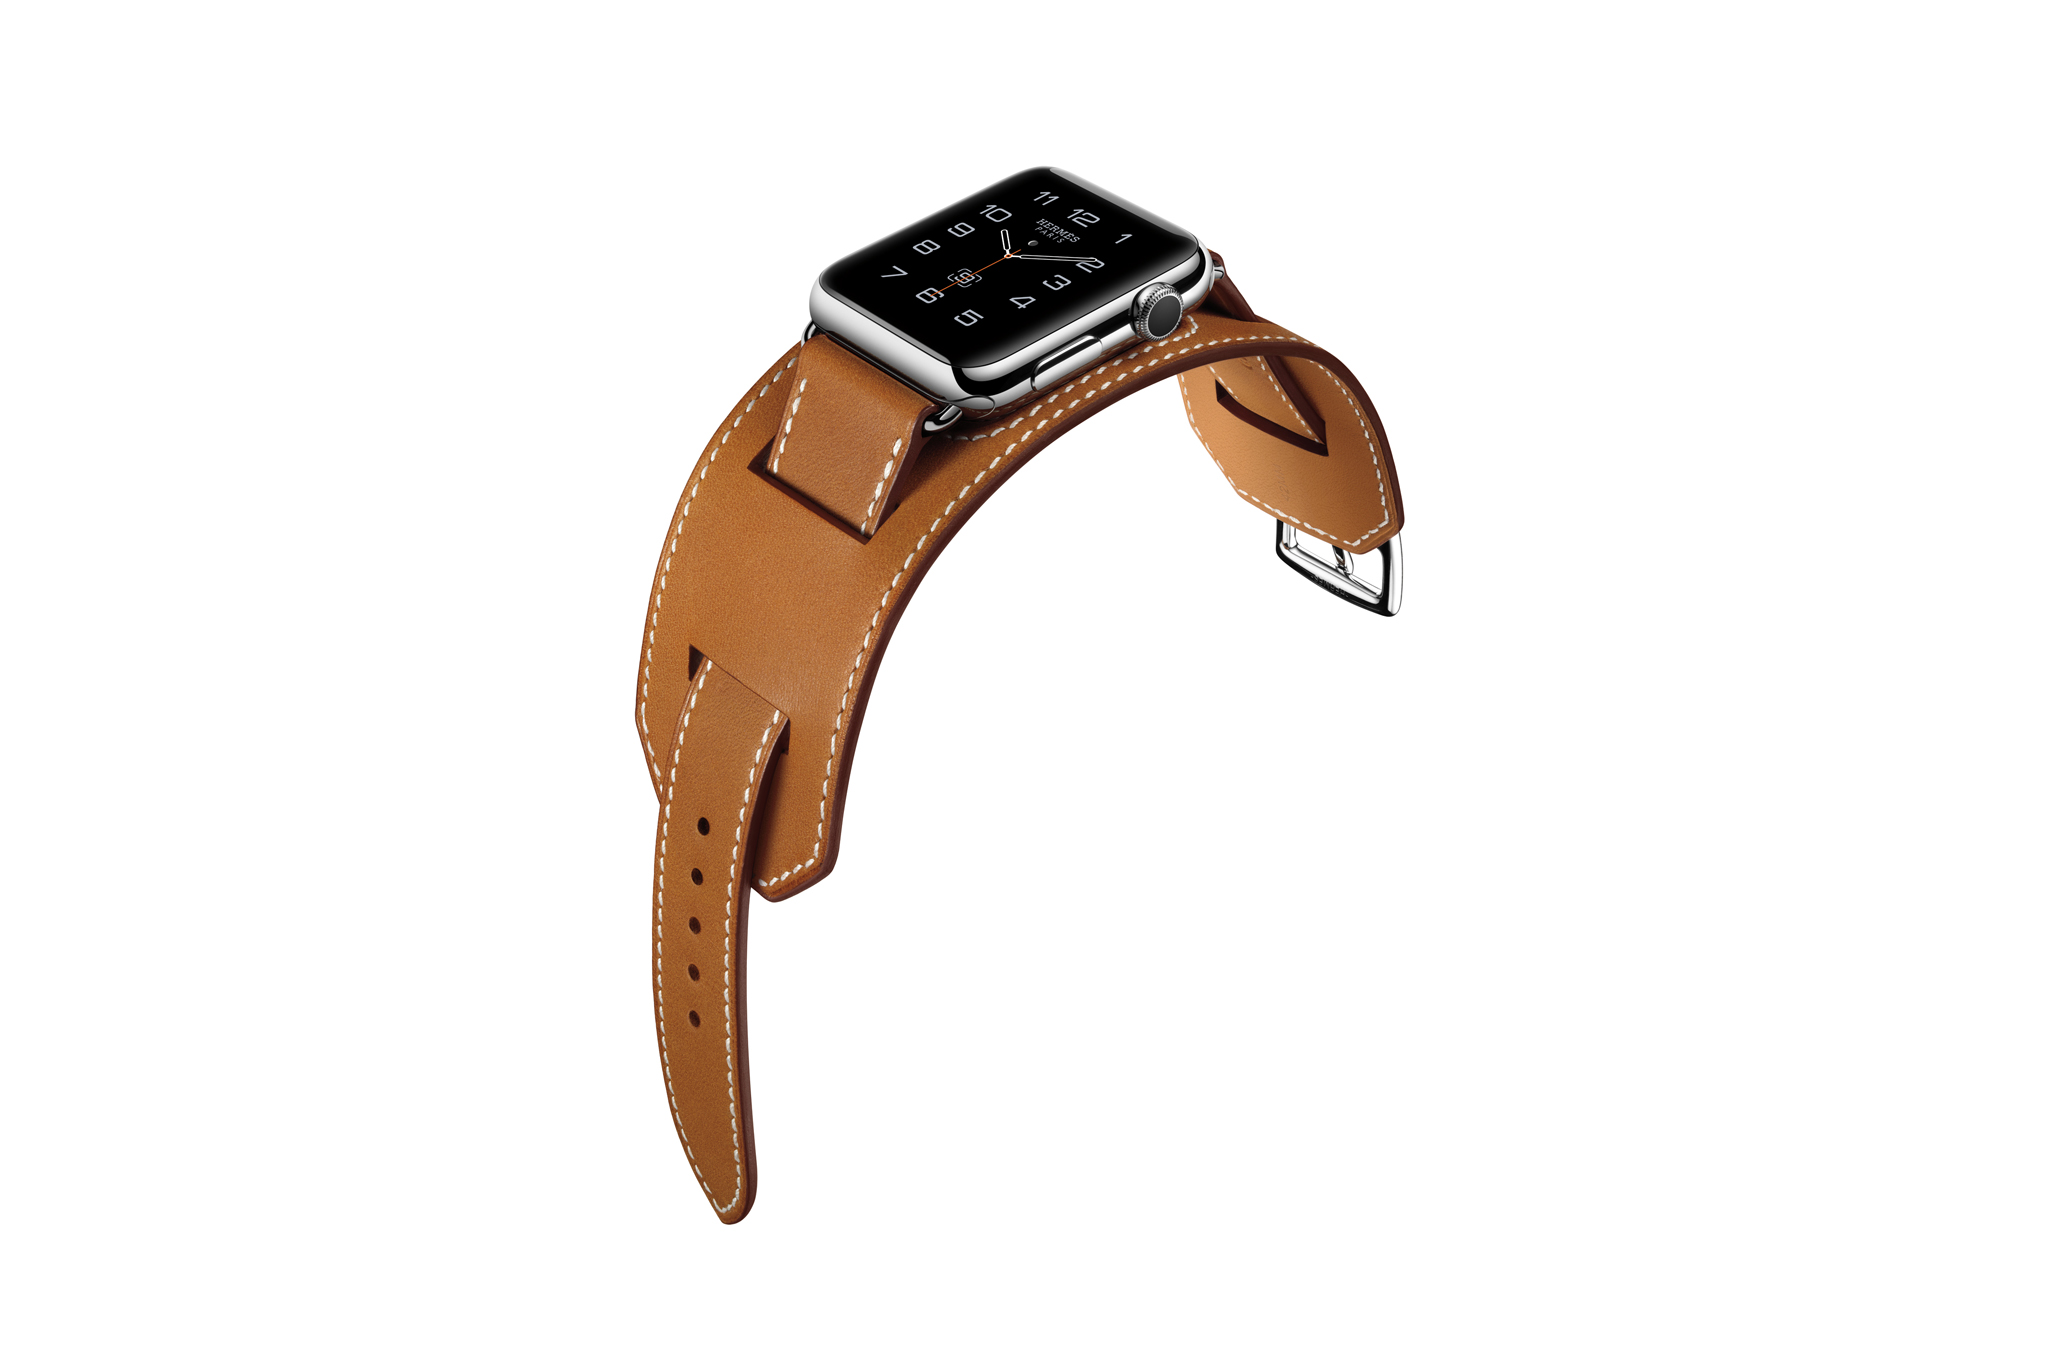 A look from the Apple Watch Hermès Collection.